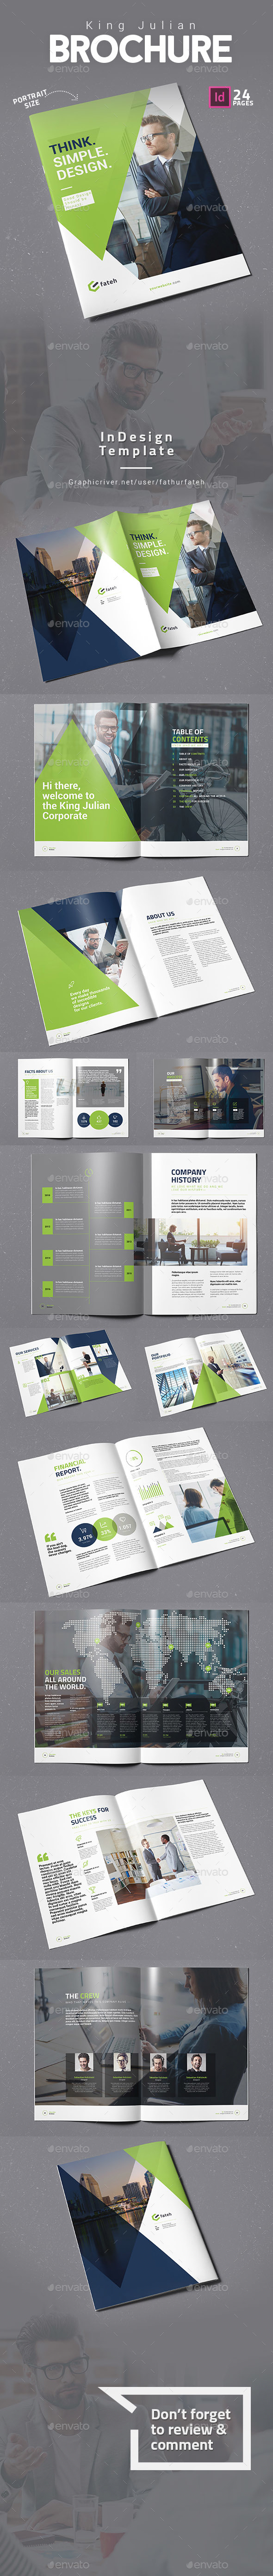 King Julian Brochure - Corporate Brochures